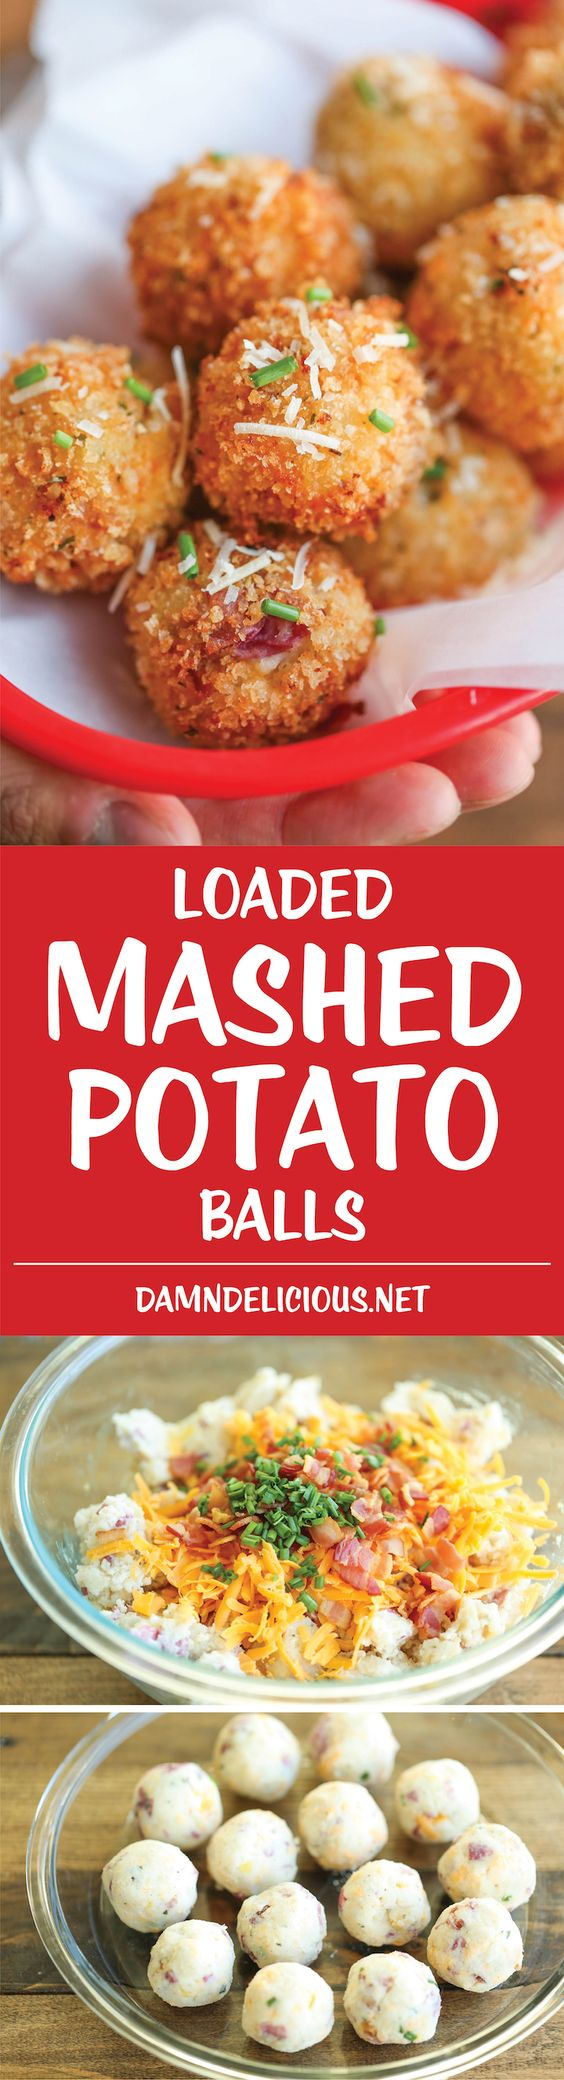 Loaded Mashed Potato Balls - What do you do with leftover mashed potatoes? You make melt-in-your-mouth, crisp yet creamy mashed potato balls of course!: